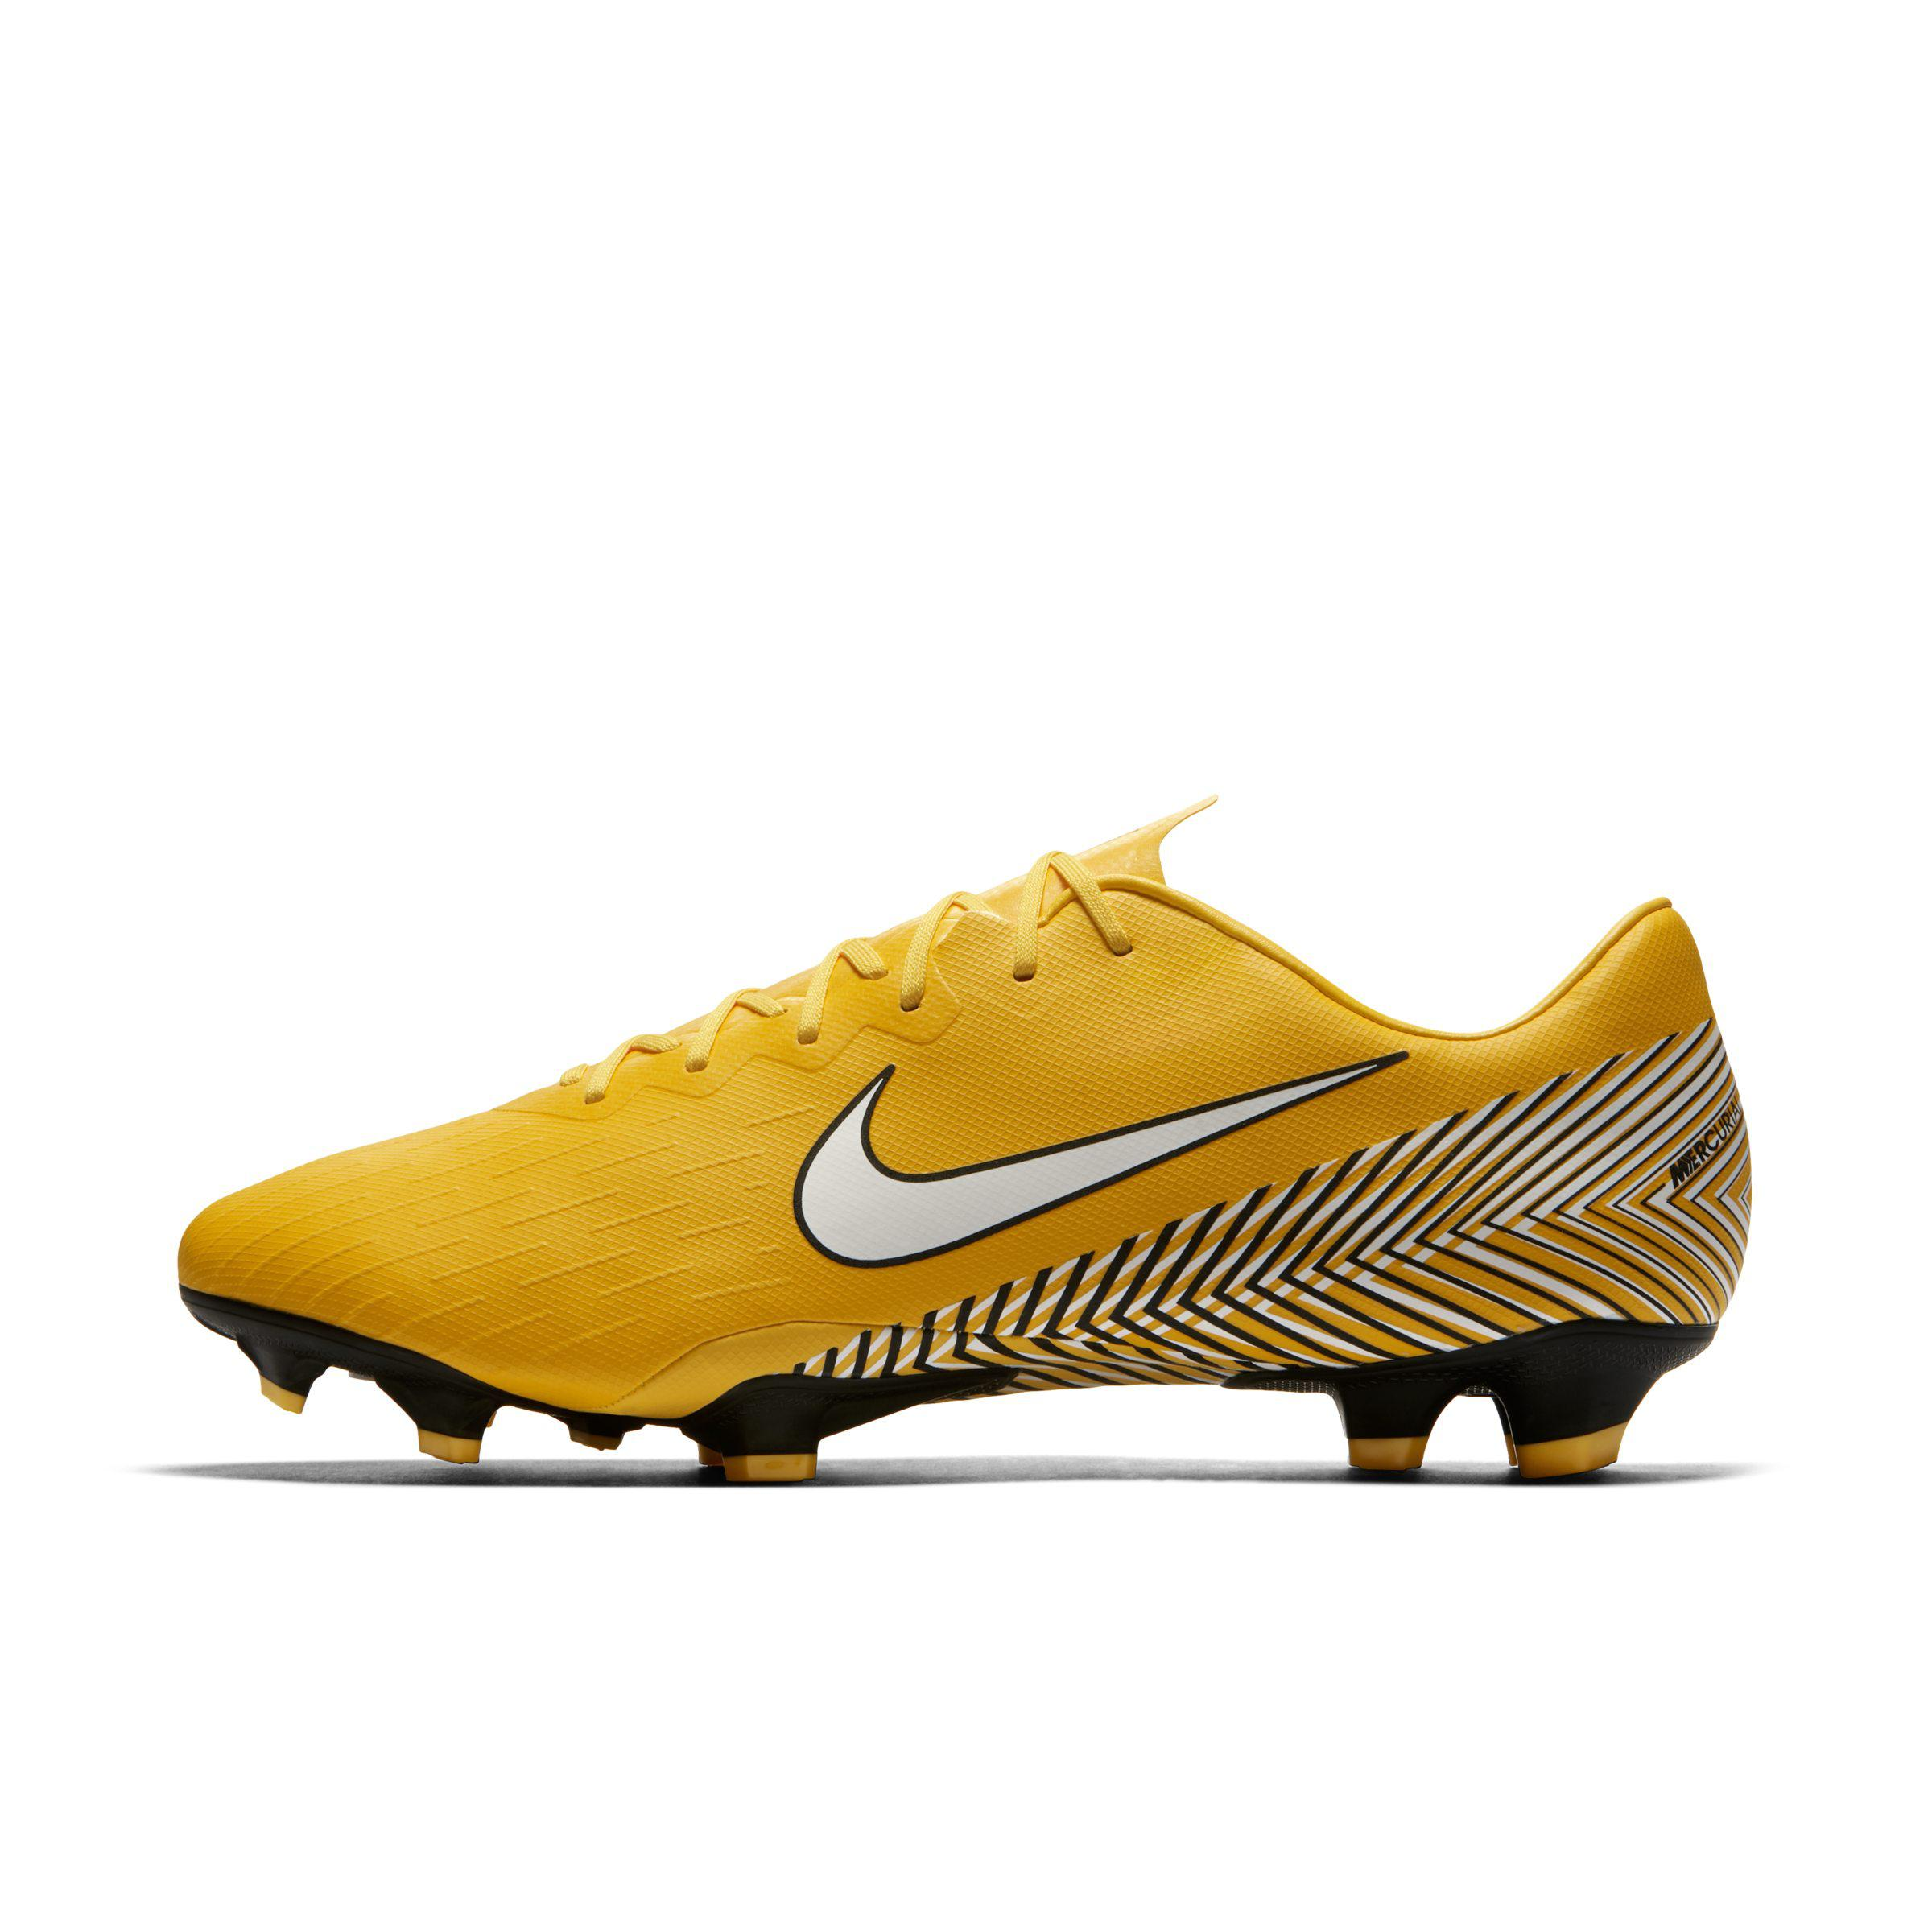 Nike Mercurial Vapor Xii Pro Neymar Jr. Firm-ground Football Boot in ... b221c18025f